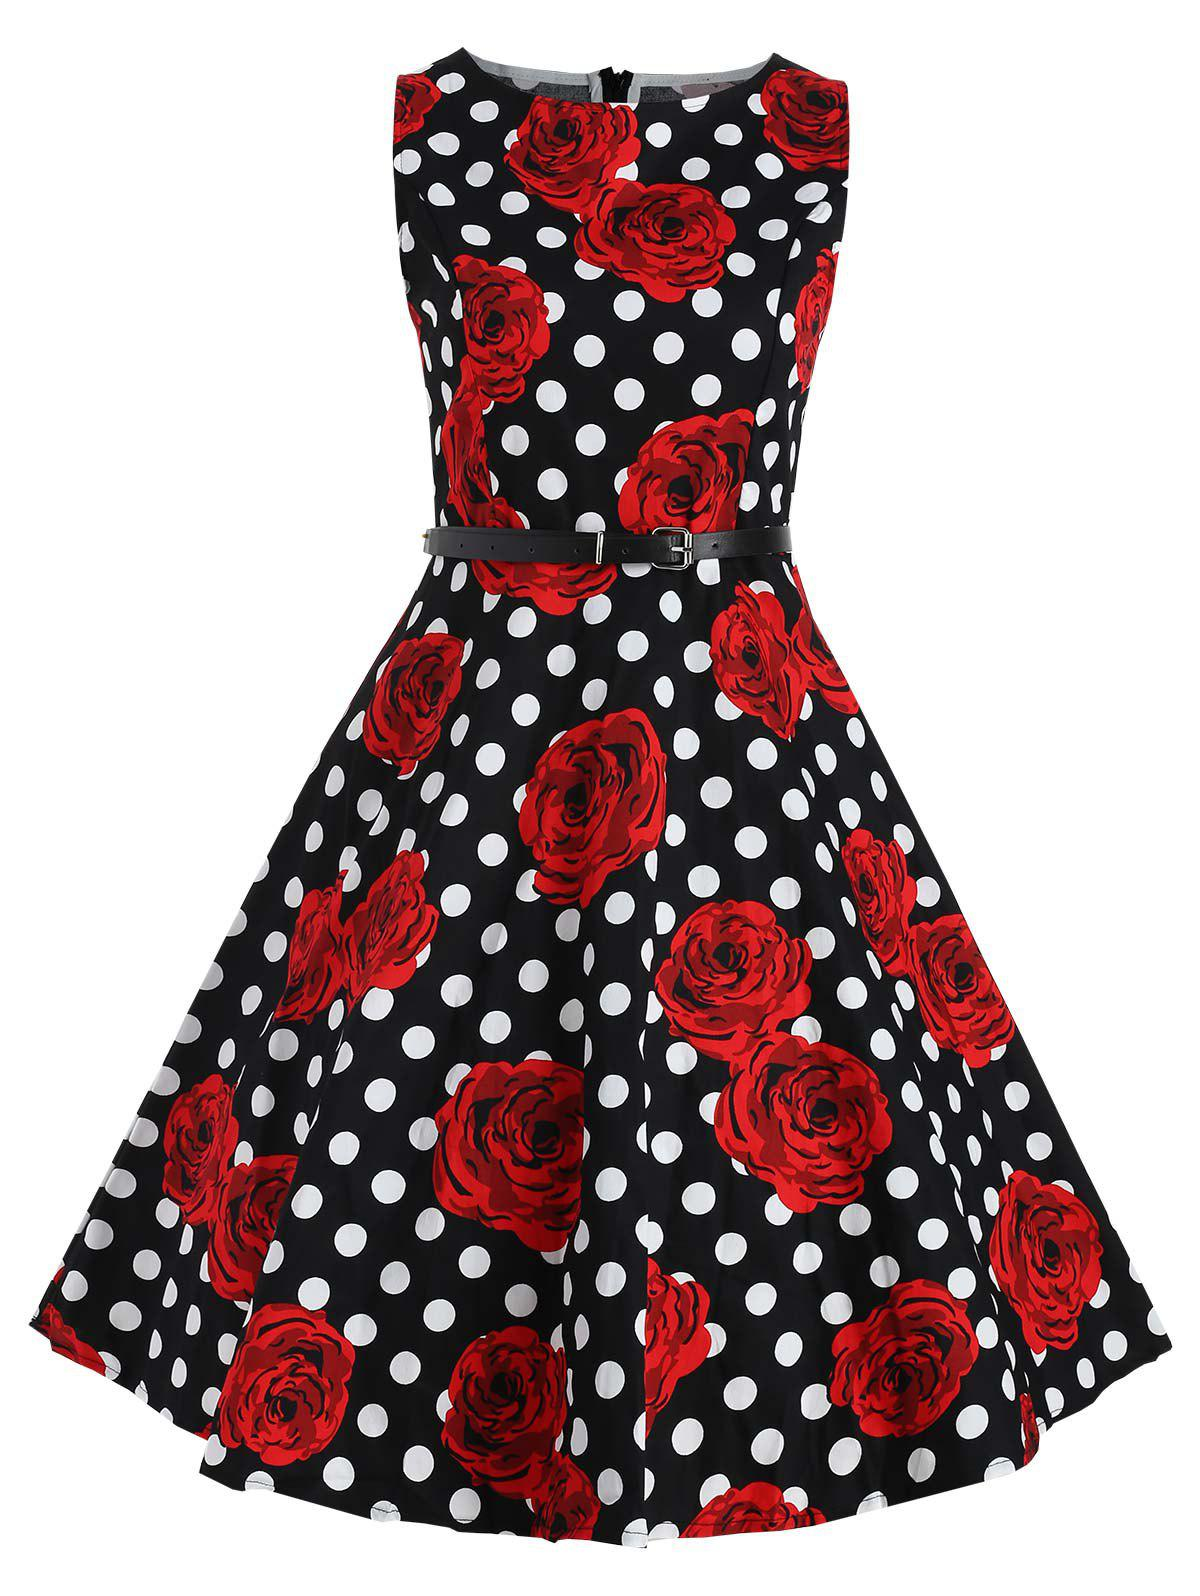 Flower and Polka Dot Print Vintage Dress - multicolor M